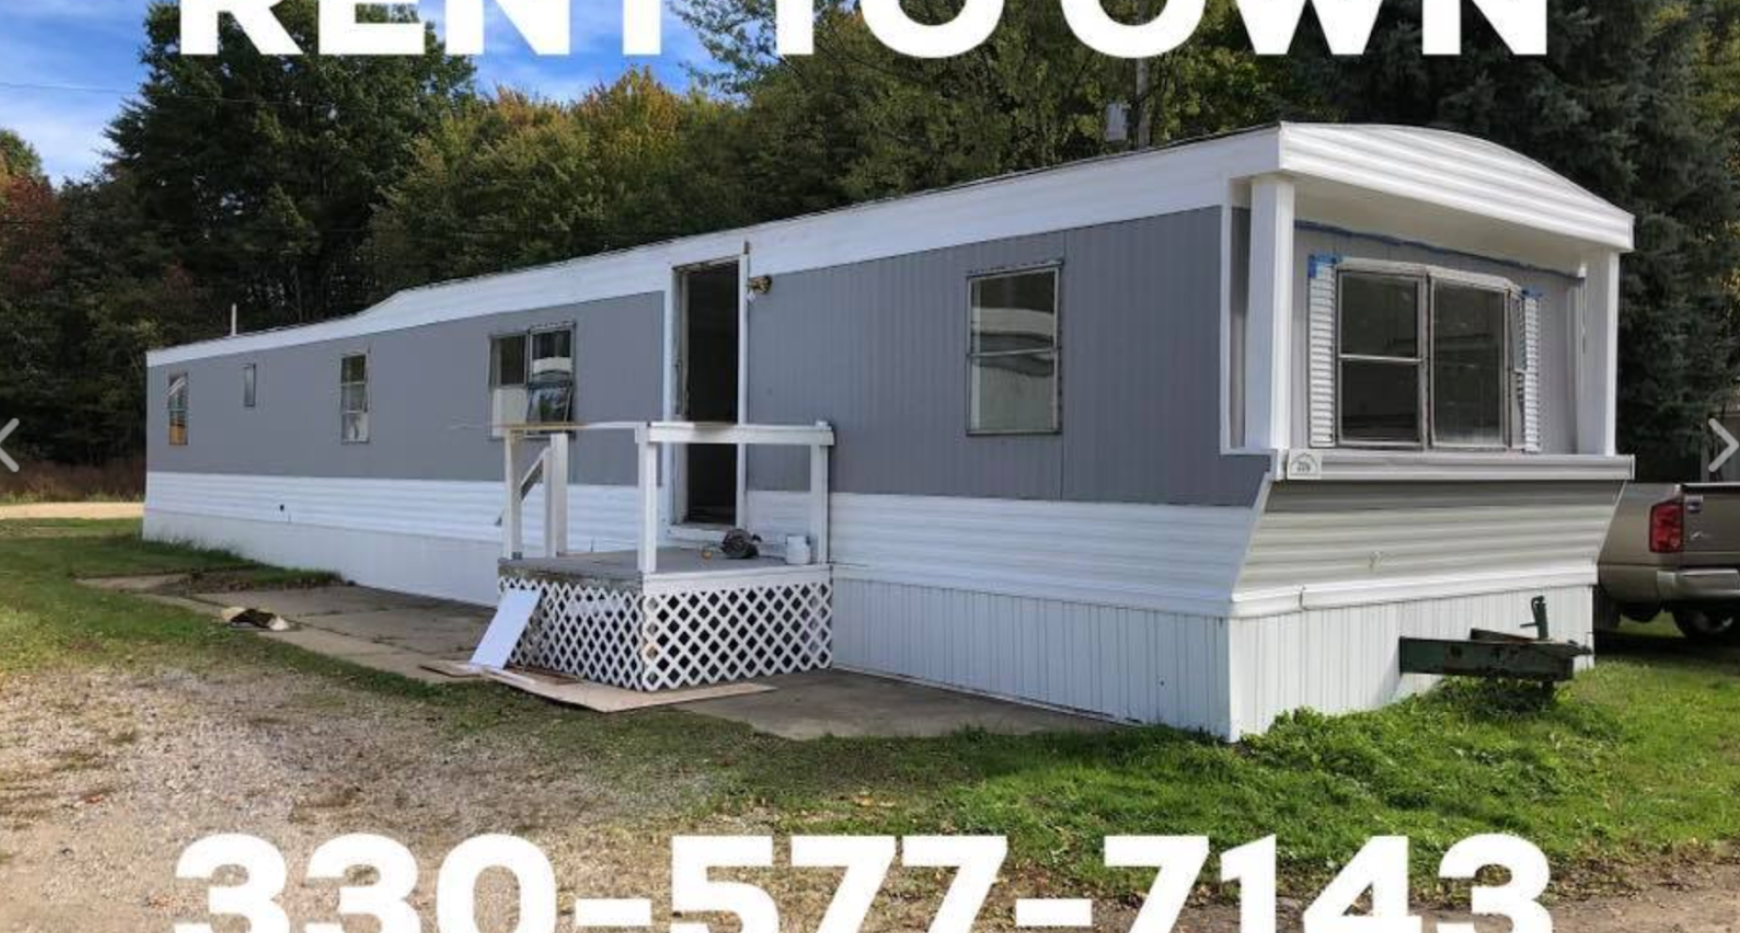 A renovation project in the Deer Run mobile home park